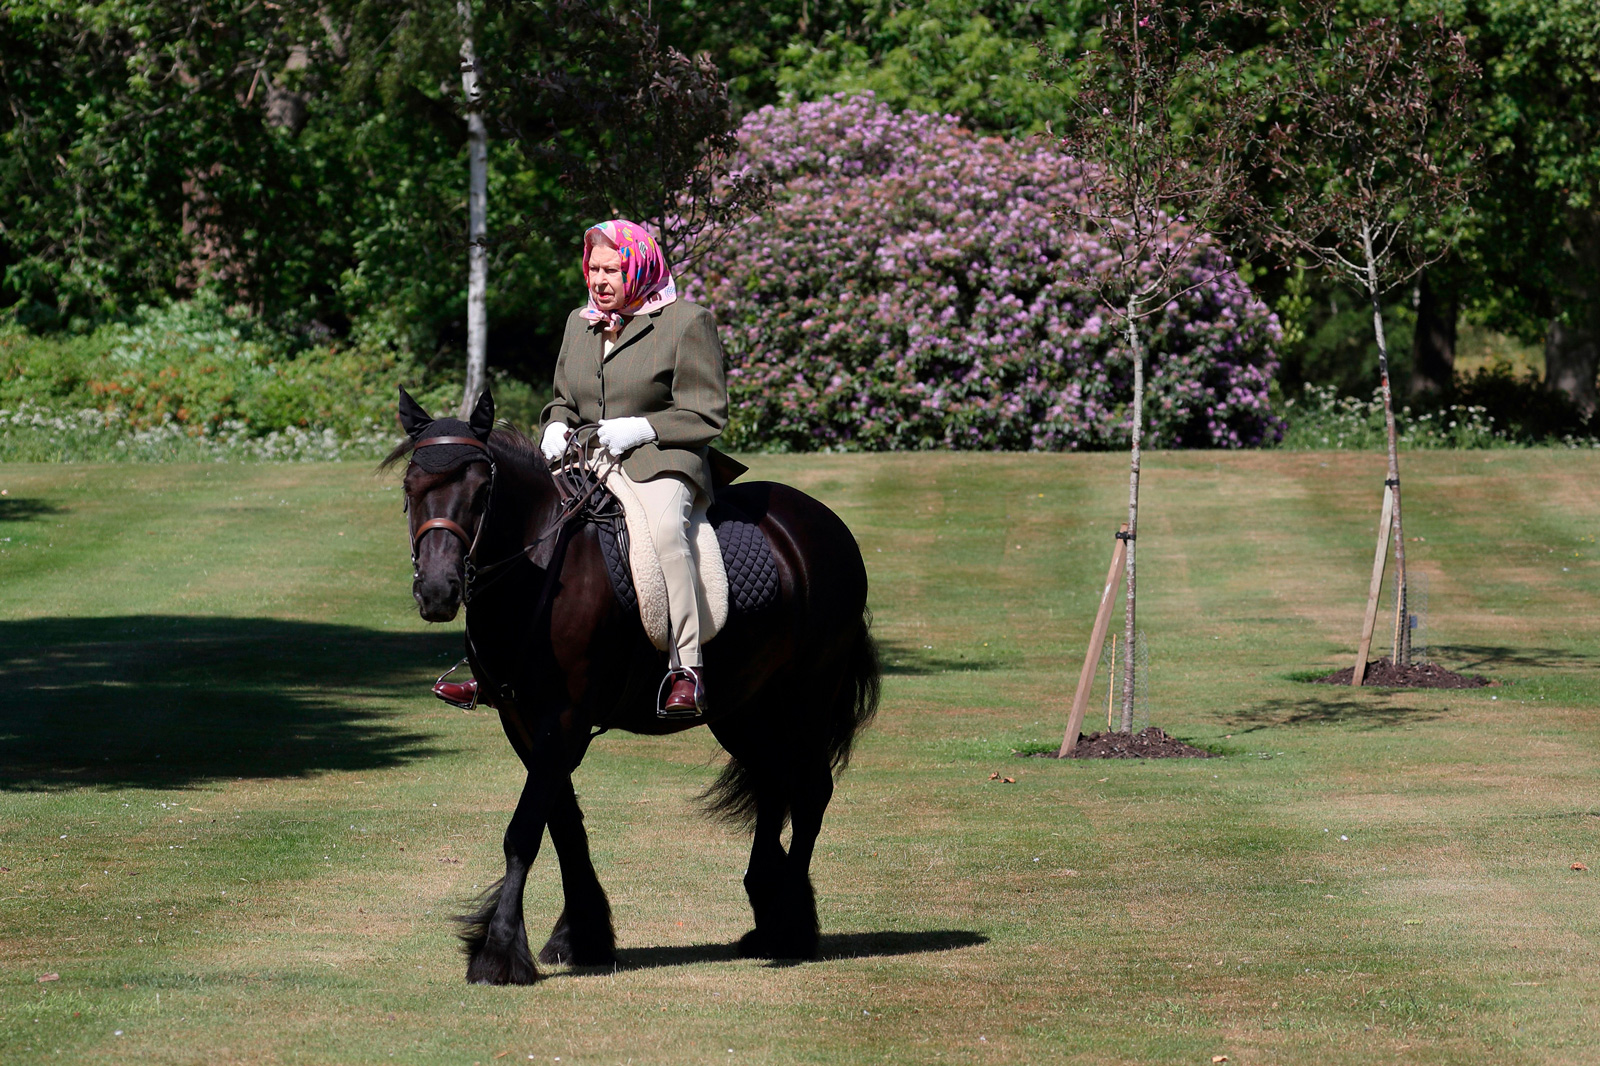 Queen Elizabeth rides on a 14-year-old Fell Pony enjoying weekend since the coronavirus lockdown started in the UK